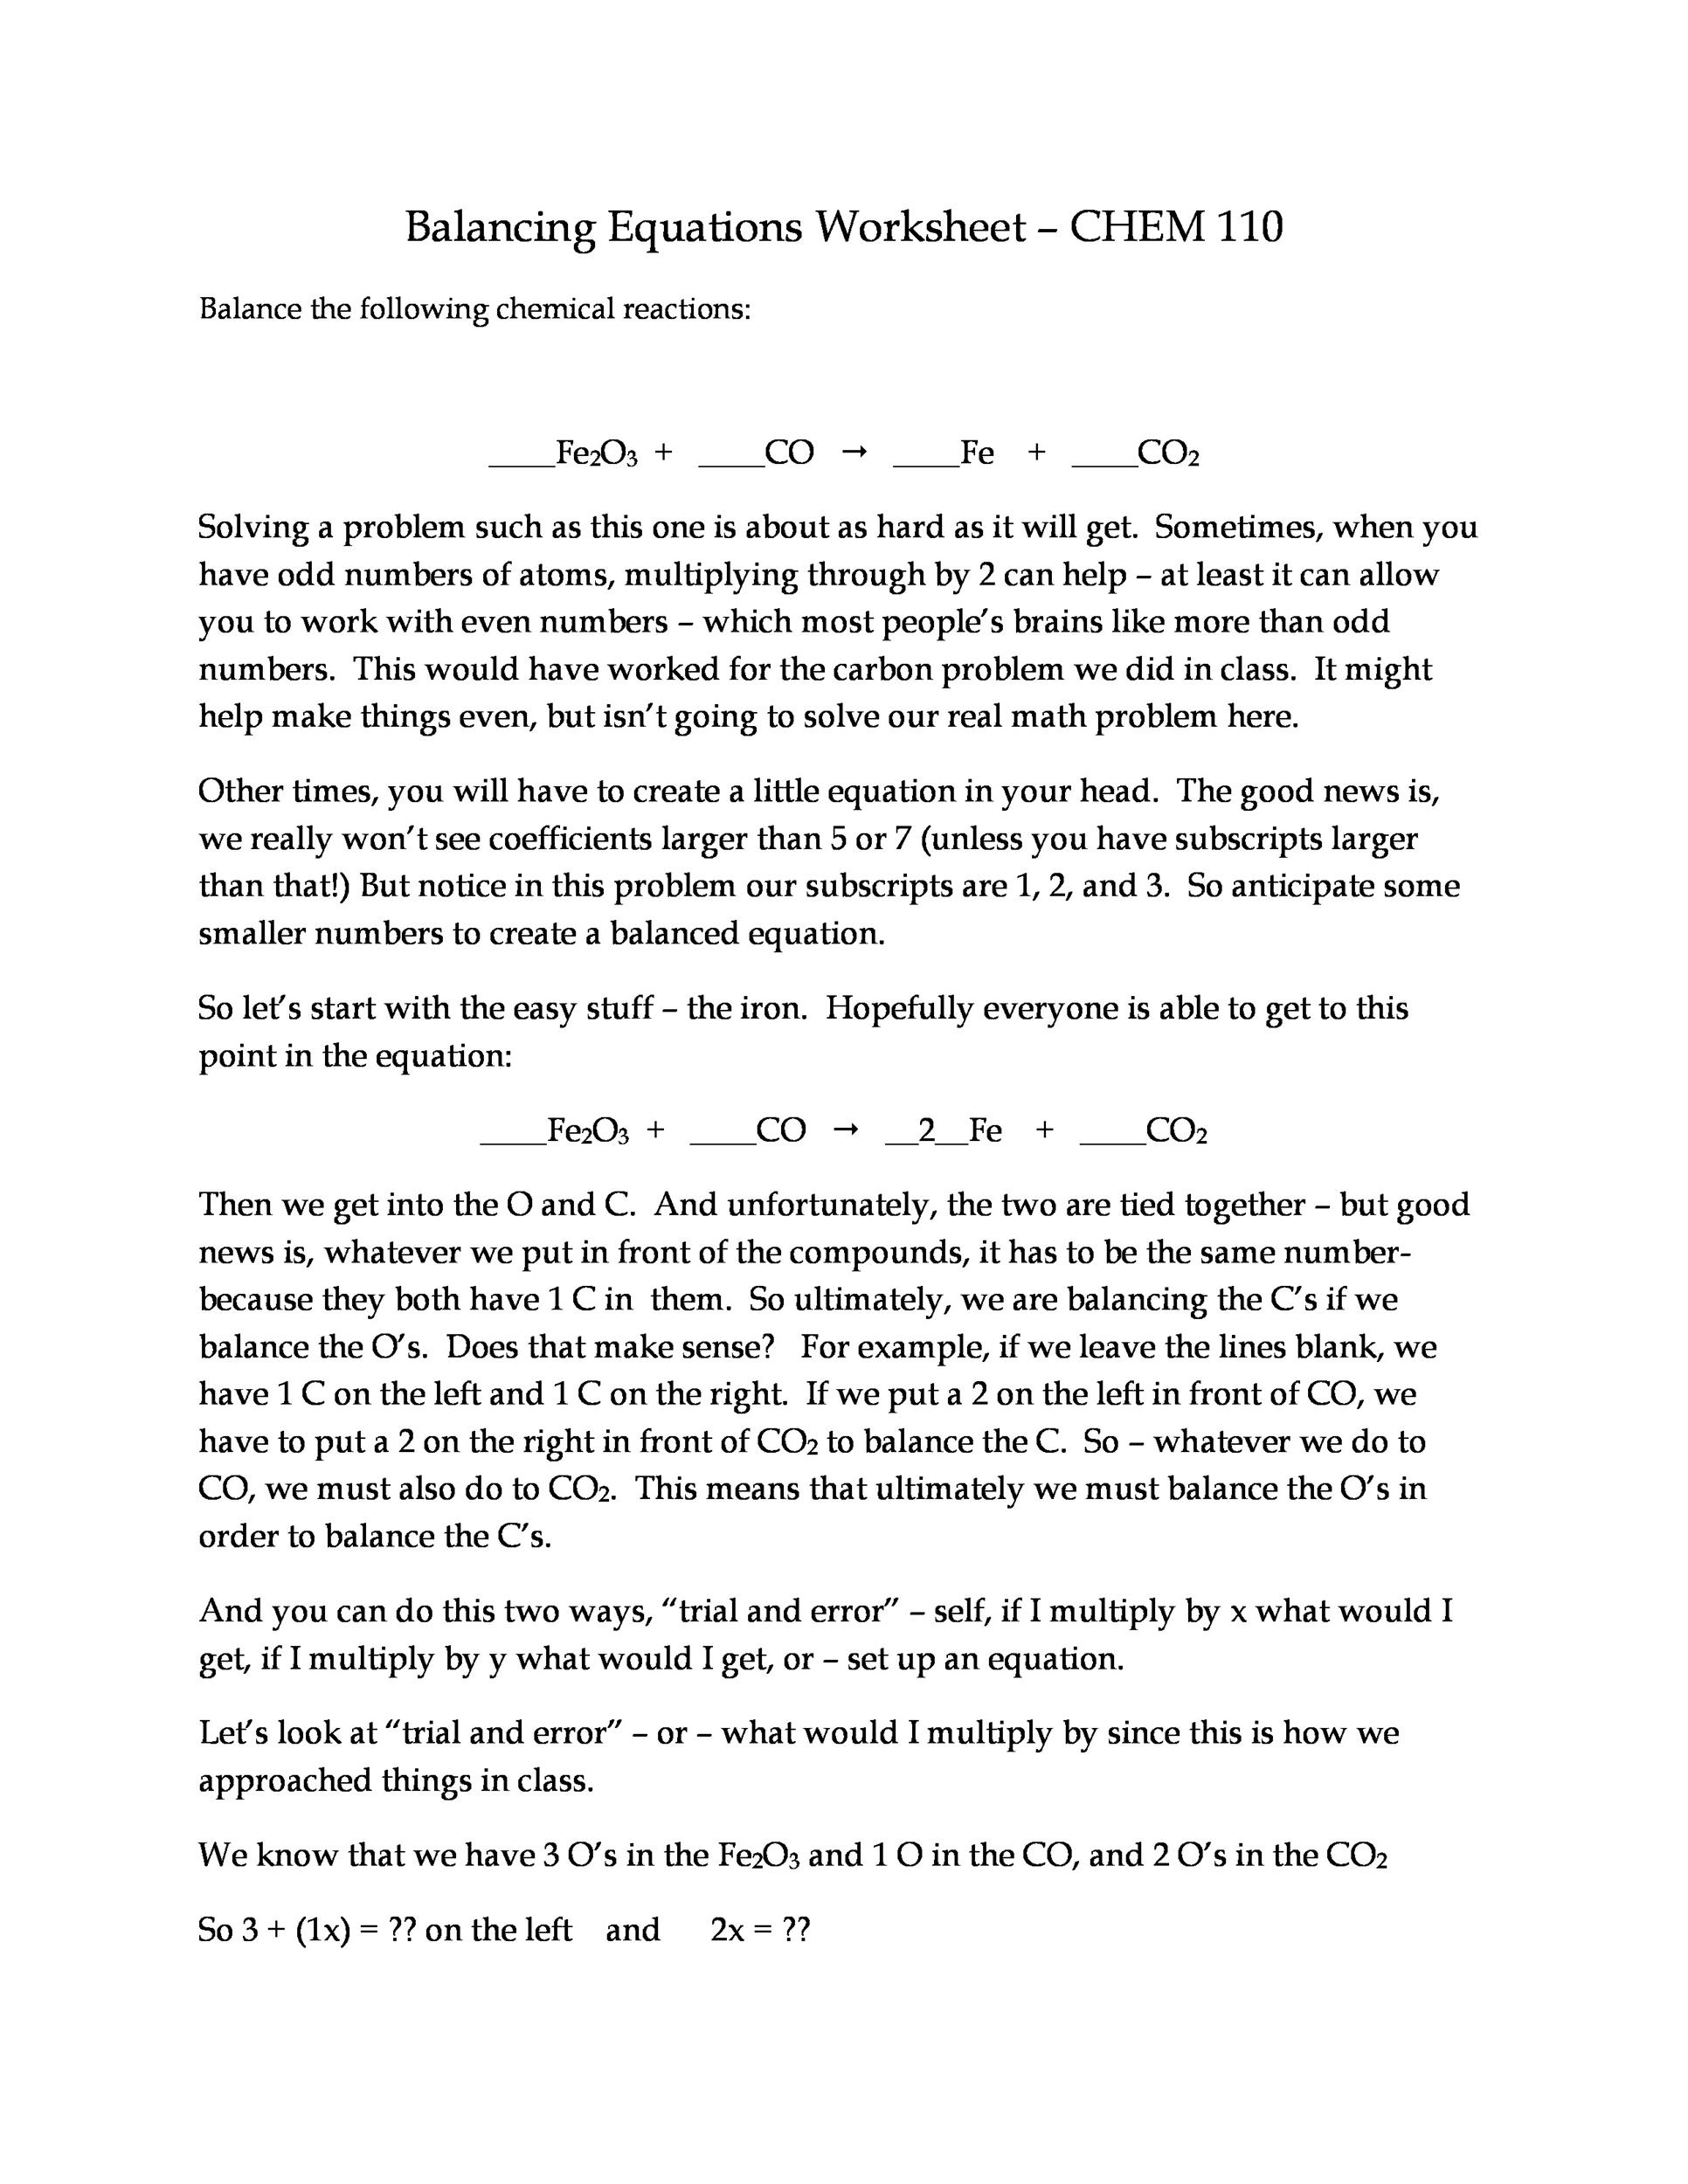 Balance Equations Problems Jennarocca – Chemfiesta Balancing Equations Worksheet Answers